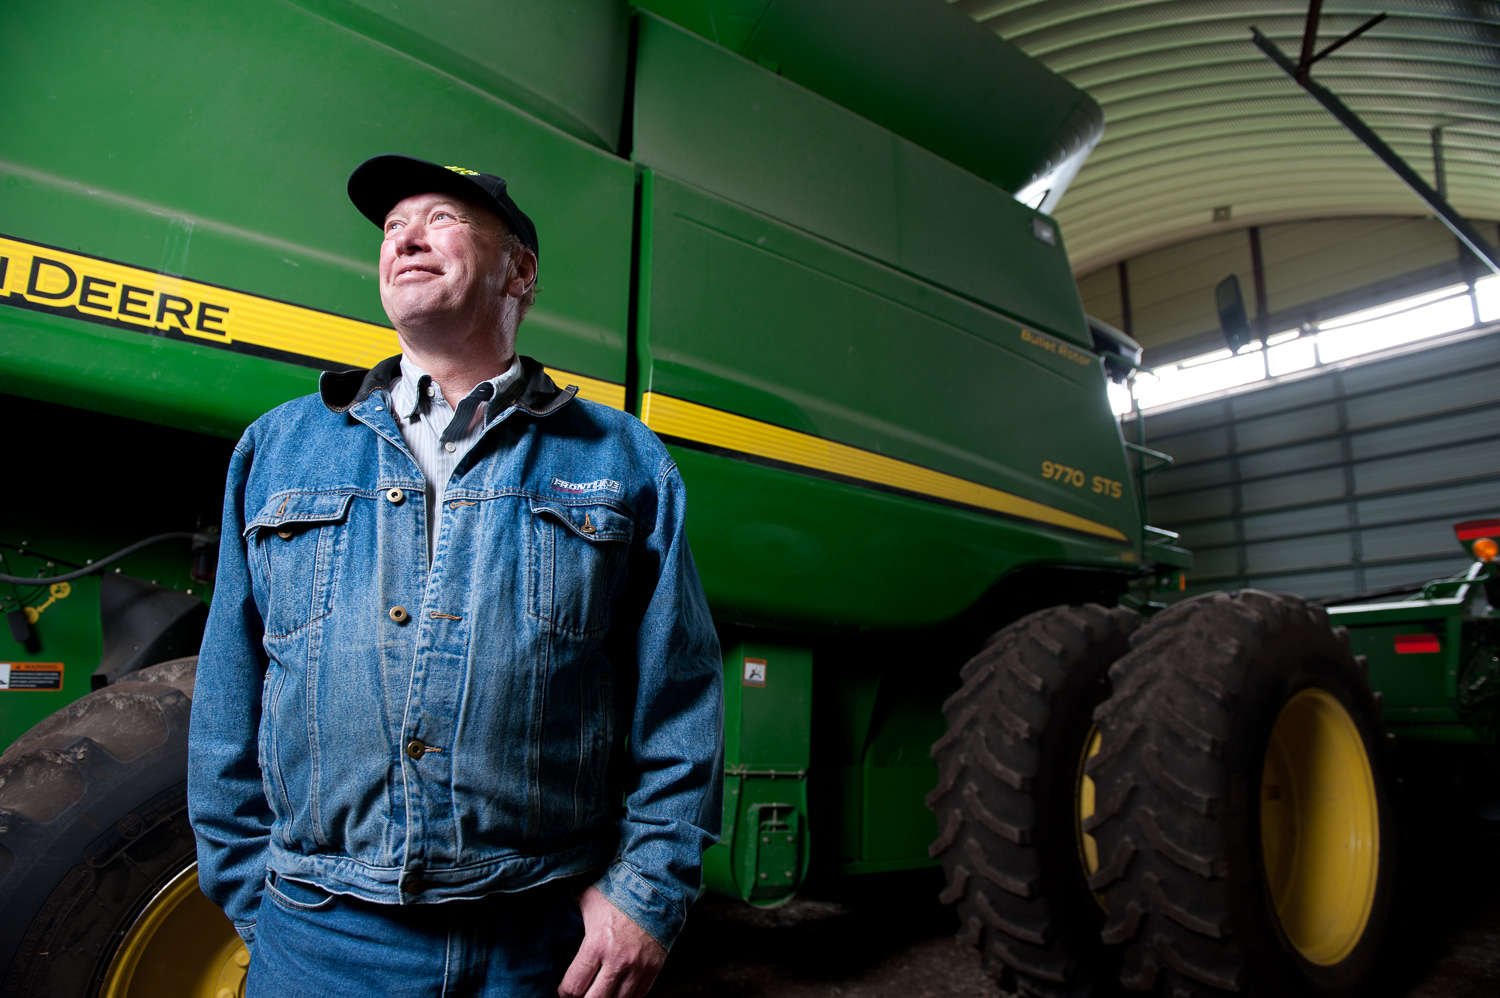 John Deere farmer by winnipeg commercial photographer